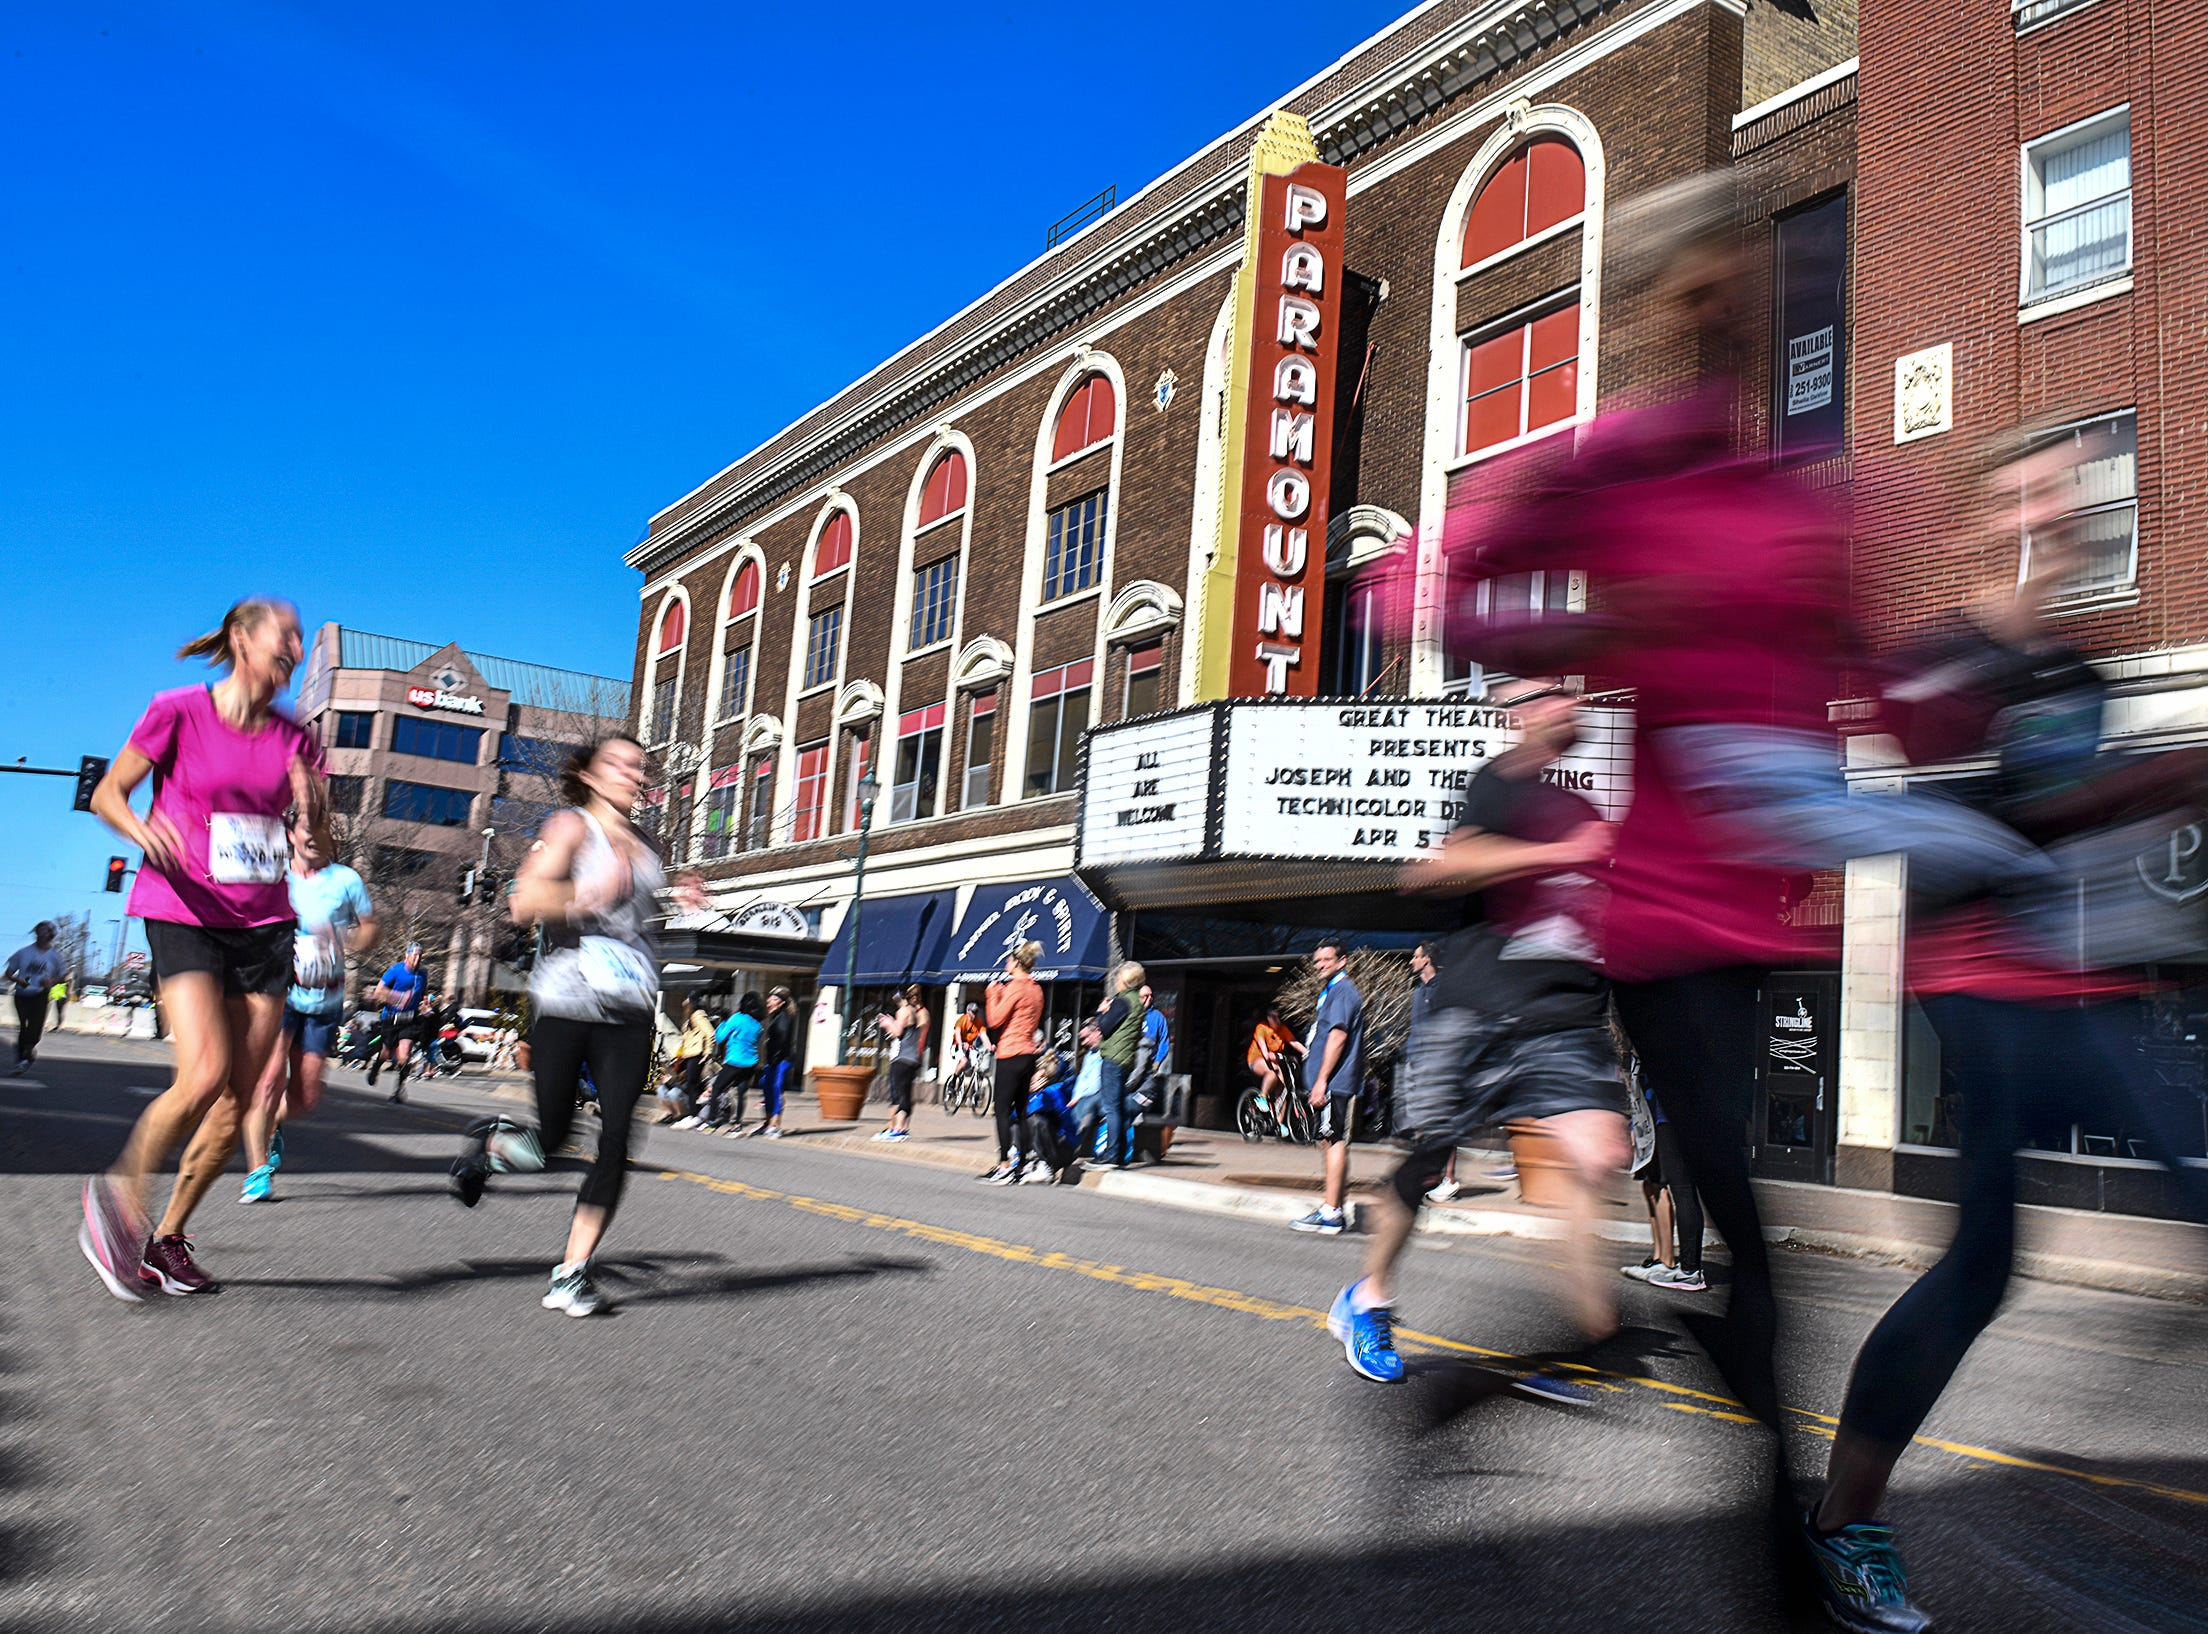 Runners speed past the Paramount Theatre on St. Germain Street during the Cetera Half Marathon as part of CentraCare Health Earth Day Run activities Saturday, April 20, in downtown St. Cloud.